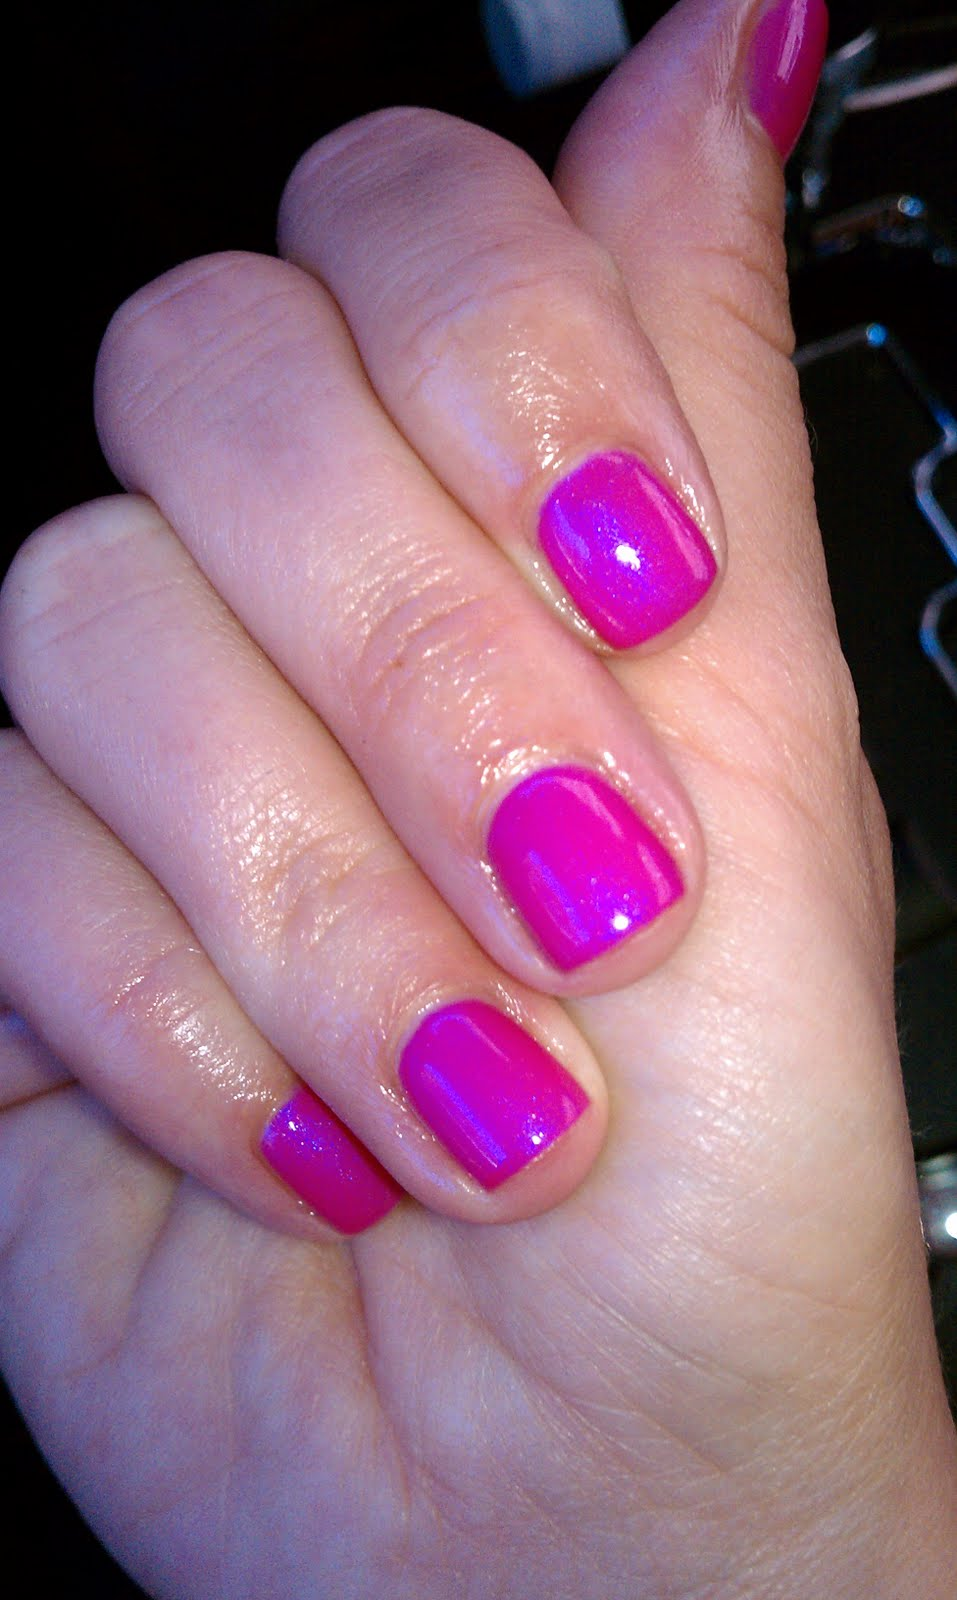 If you have not tried shellac, you are missing out!